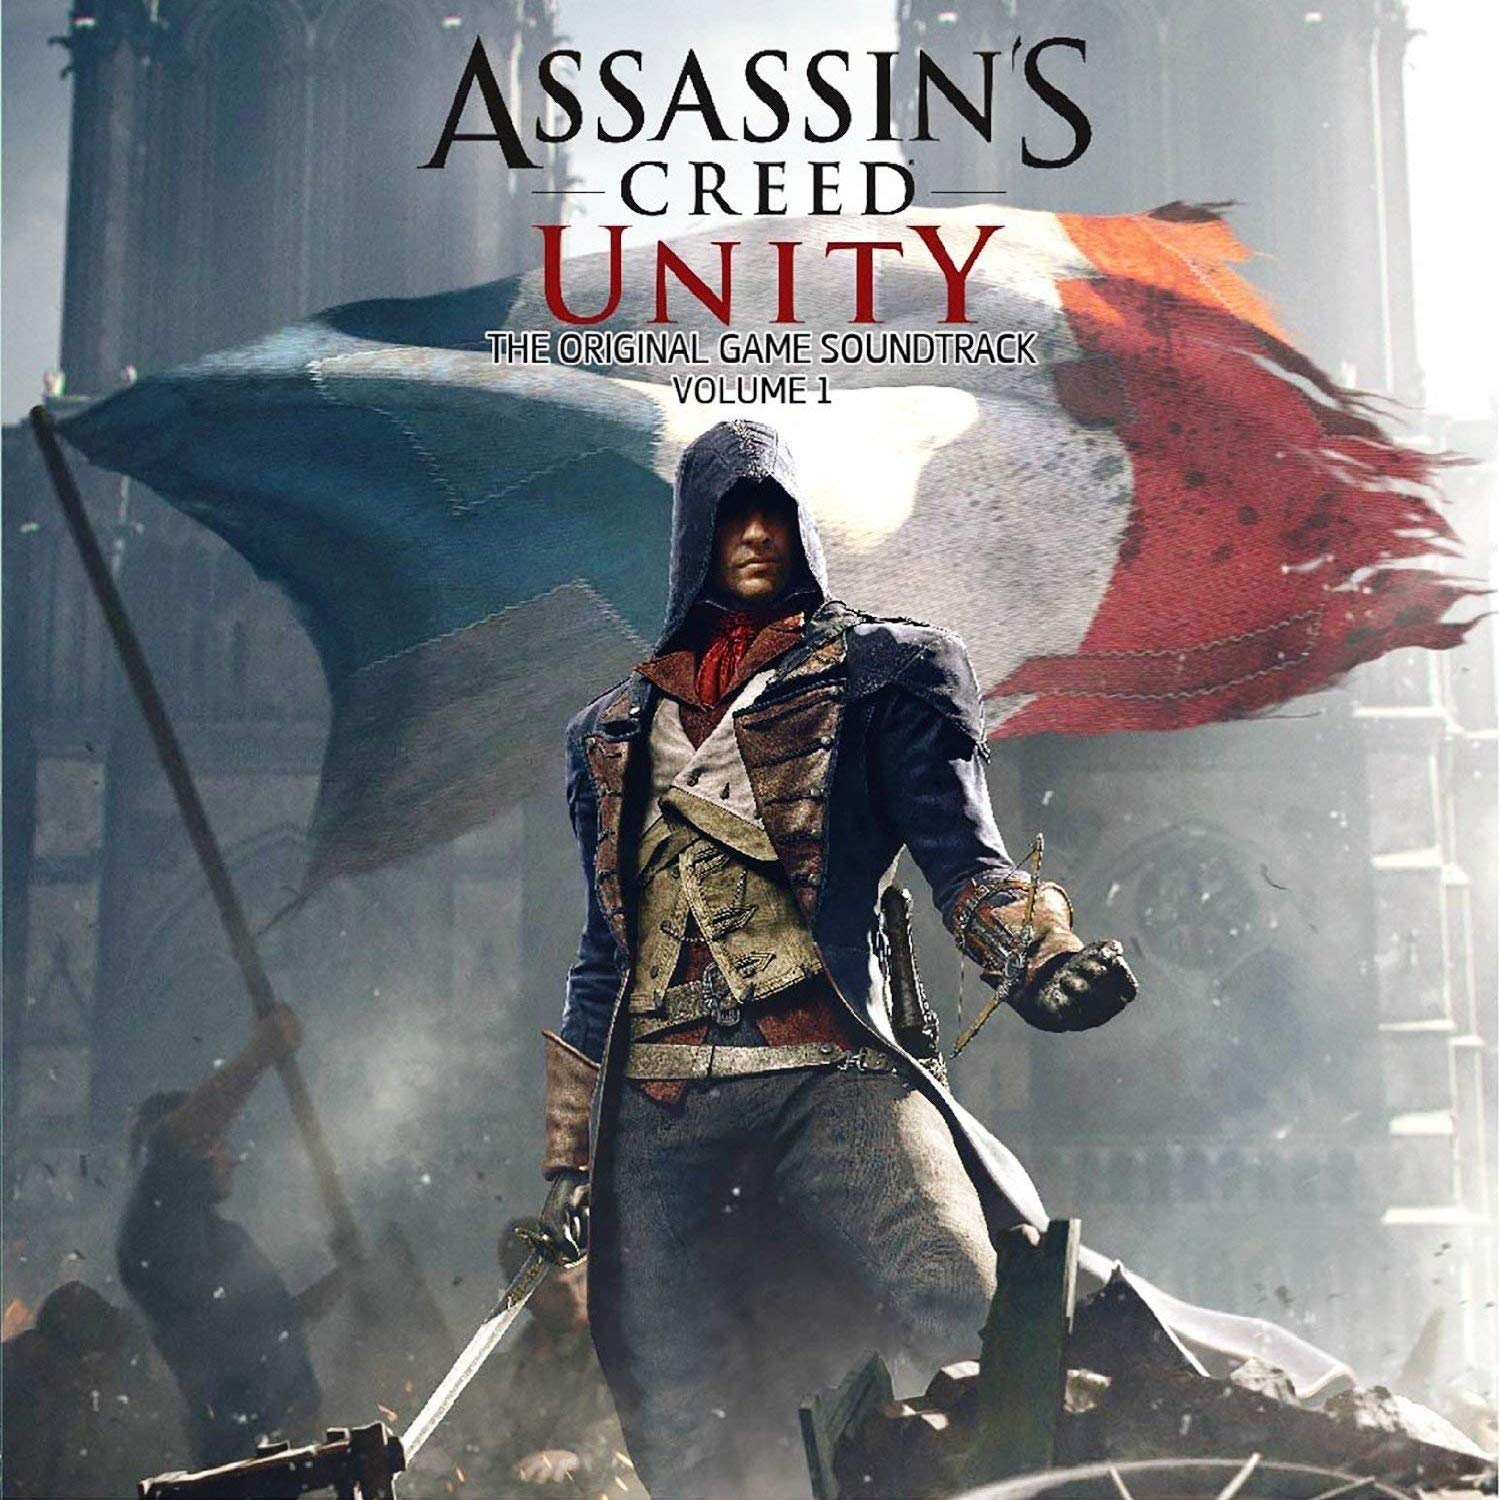 Chris Tilton Assassin S Creed Unity 1 Original Game Soundtrack